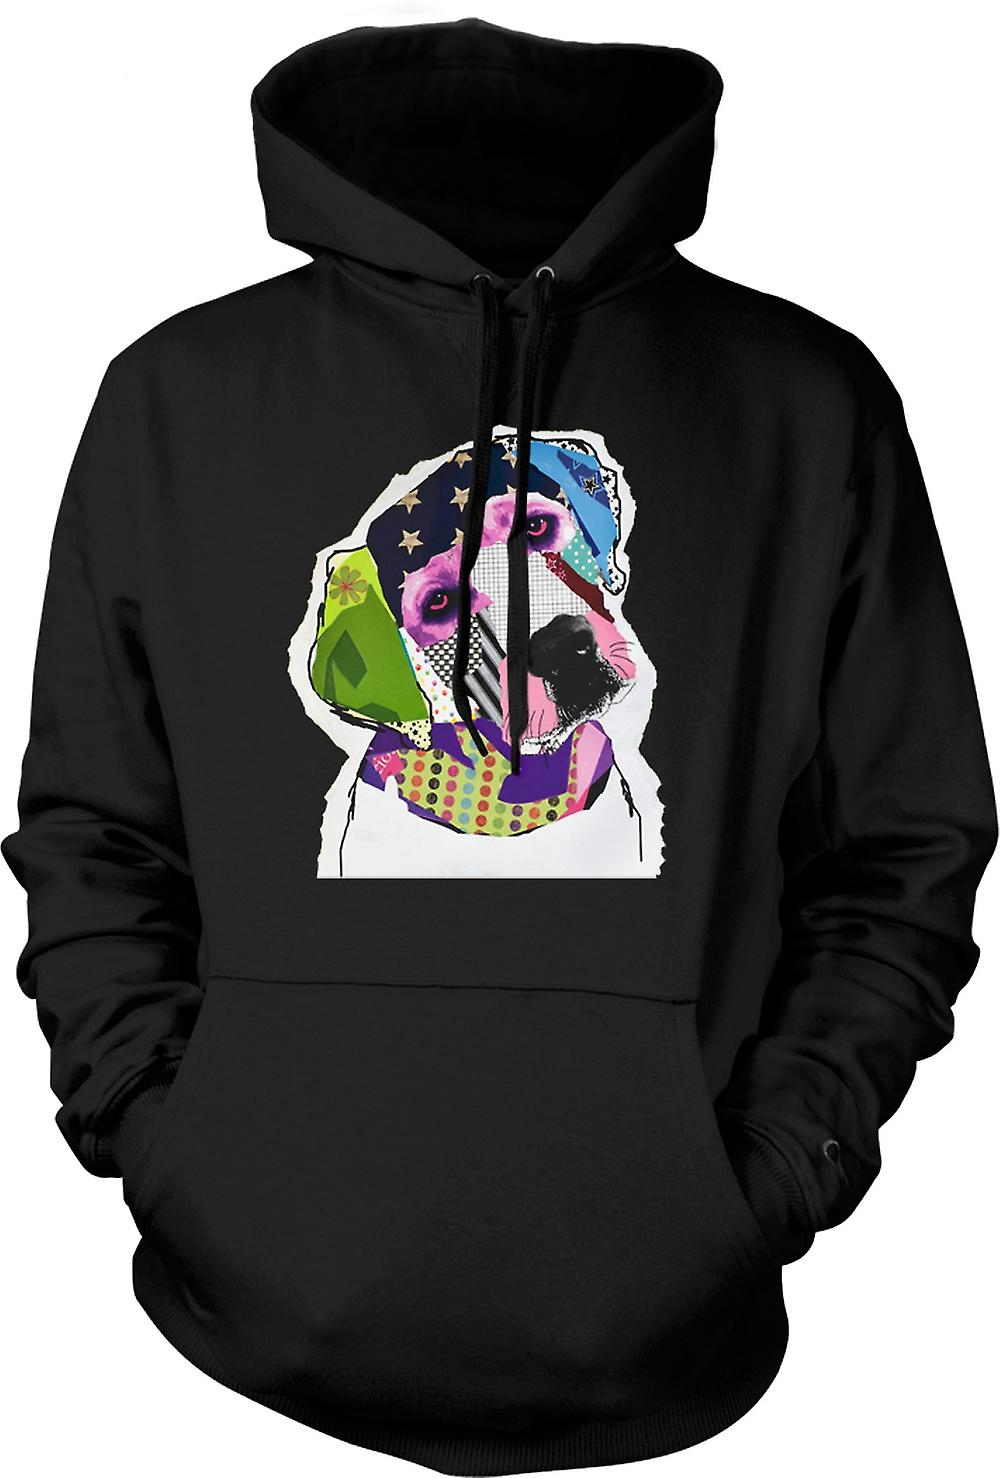 Mens Hoodie - Labrador - Cool - Pop Art - Cut Out